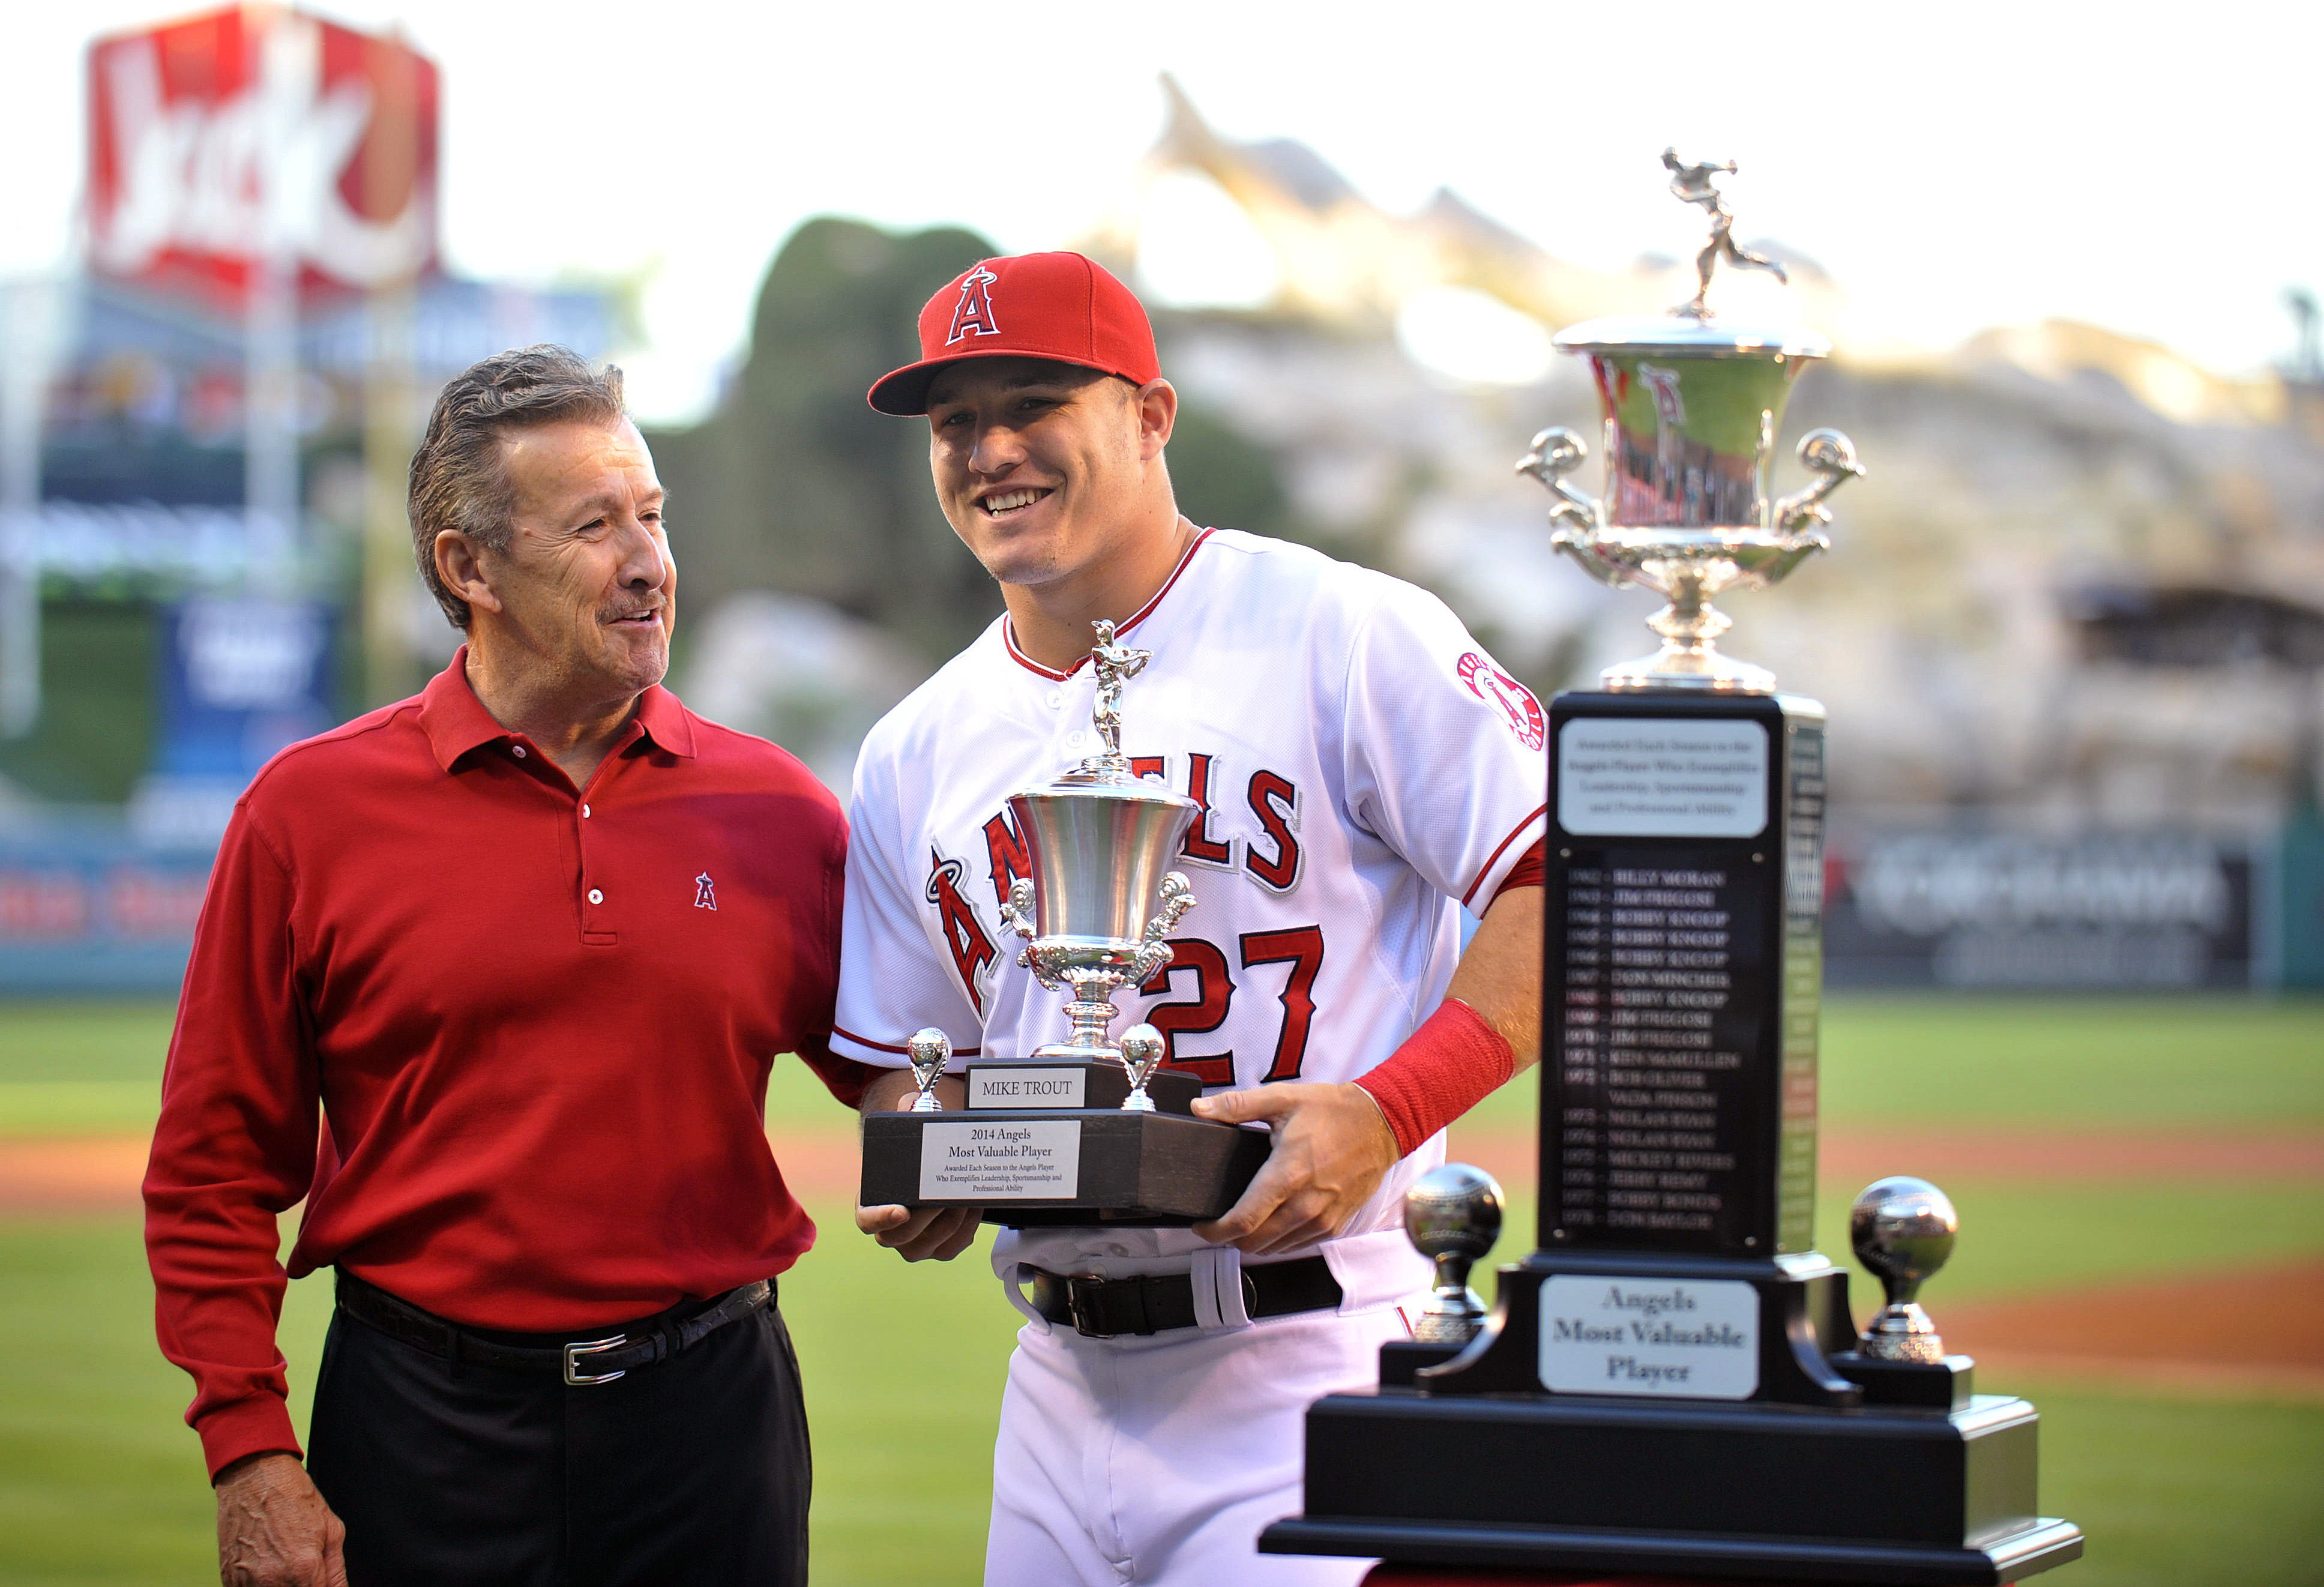 Arte Moreno/Mike Trout